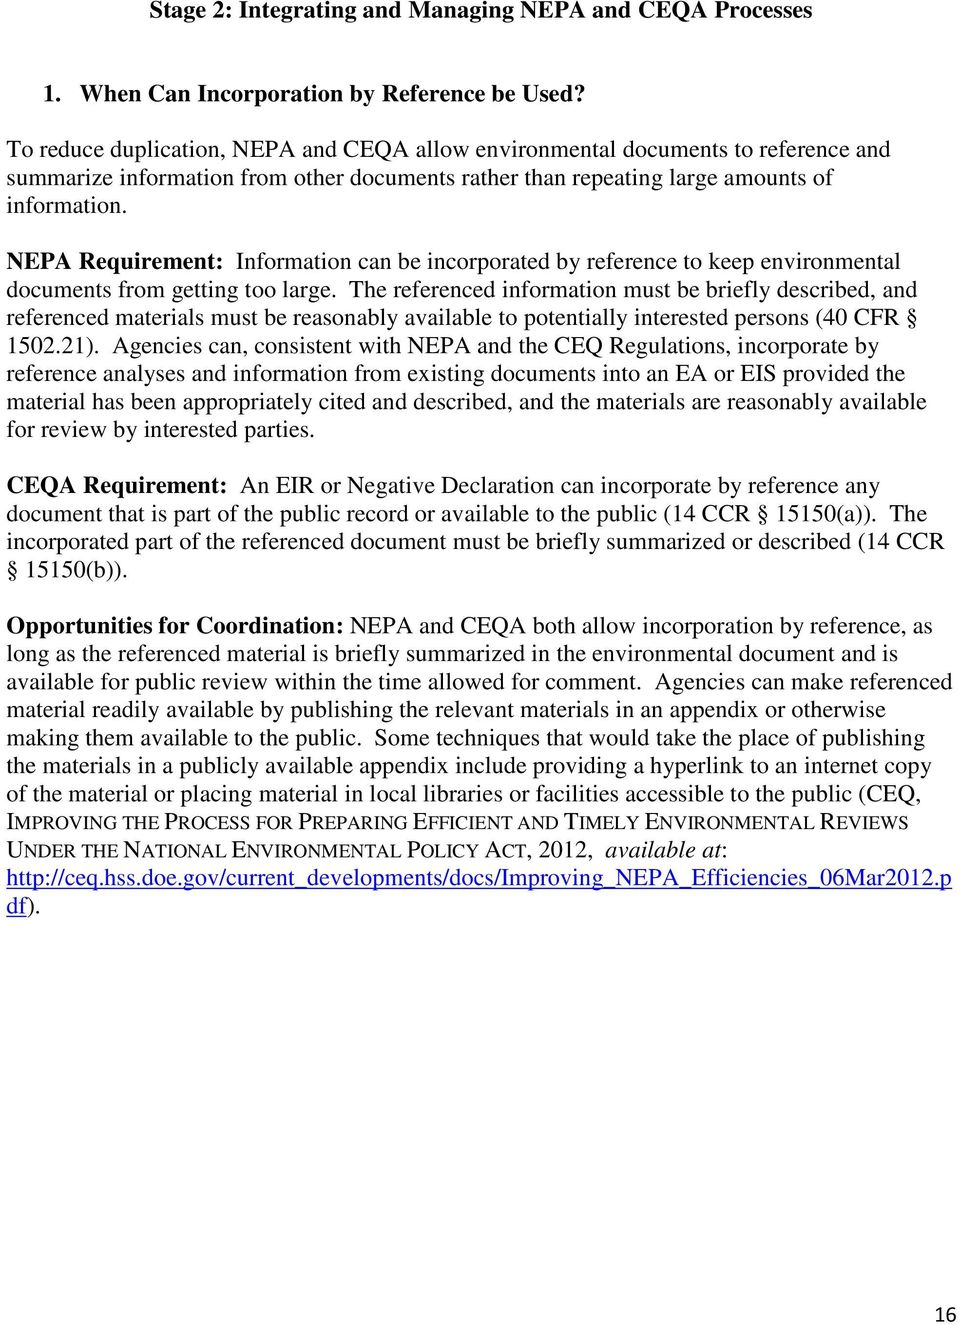 NEPA Requirement: Information can be incorporated by reference to keep environmental documents from getting too large.